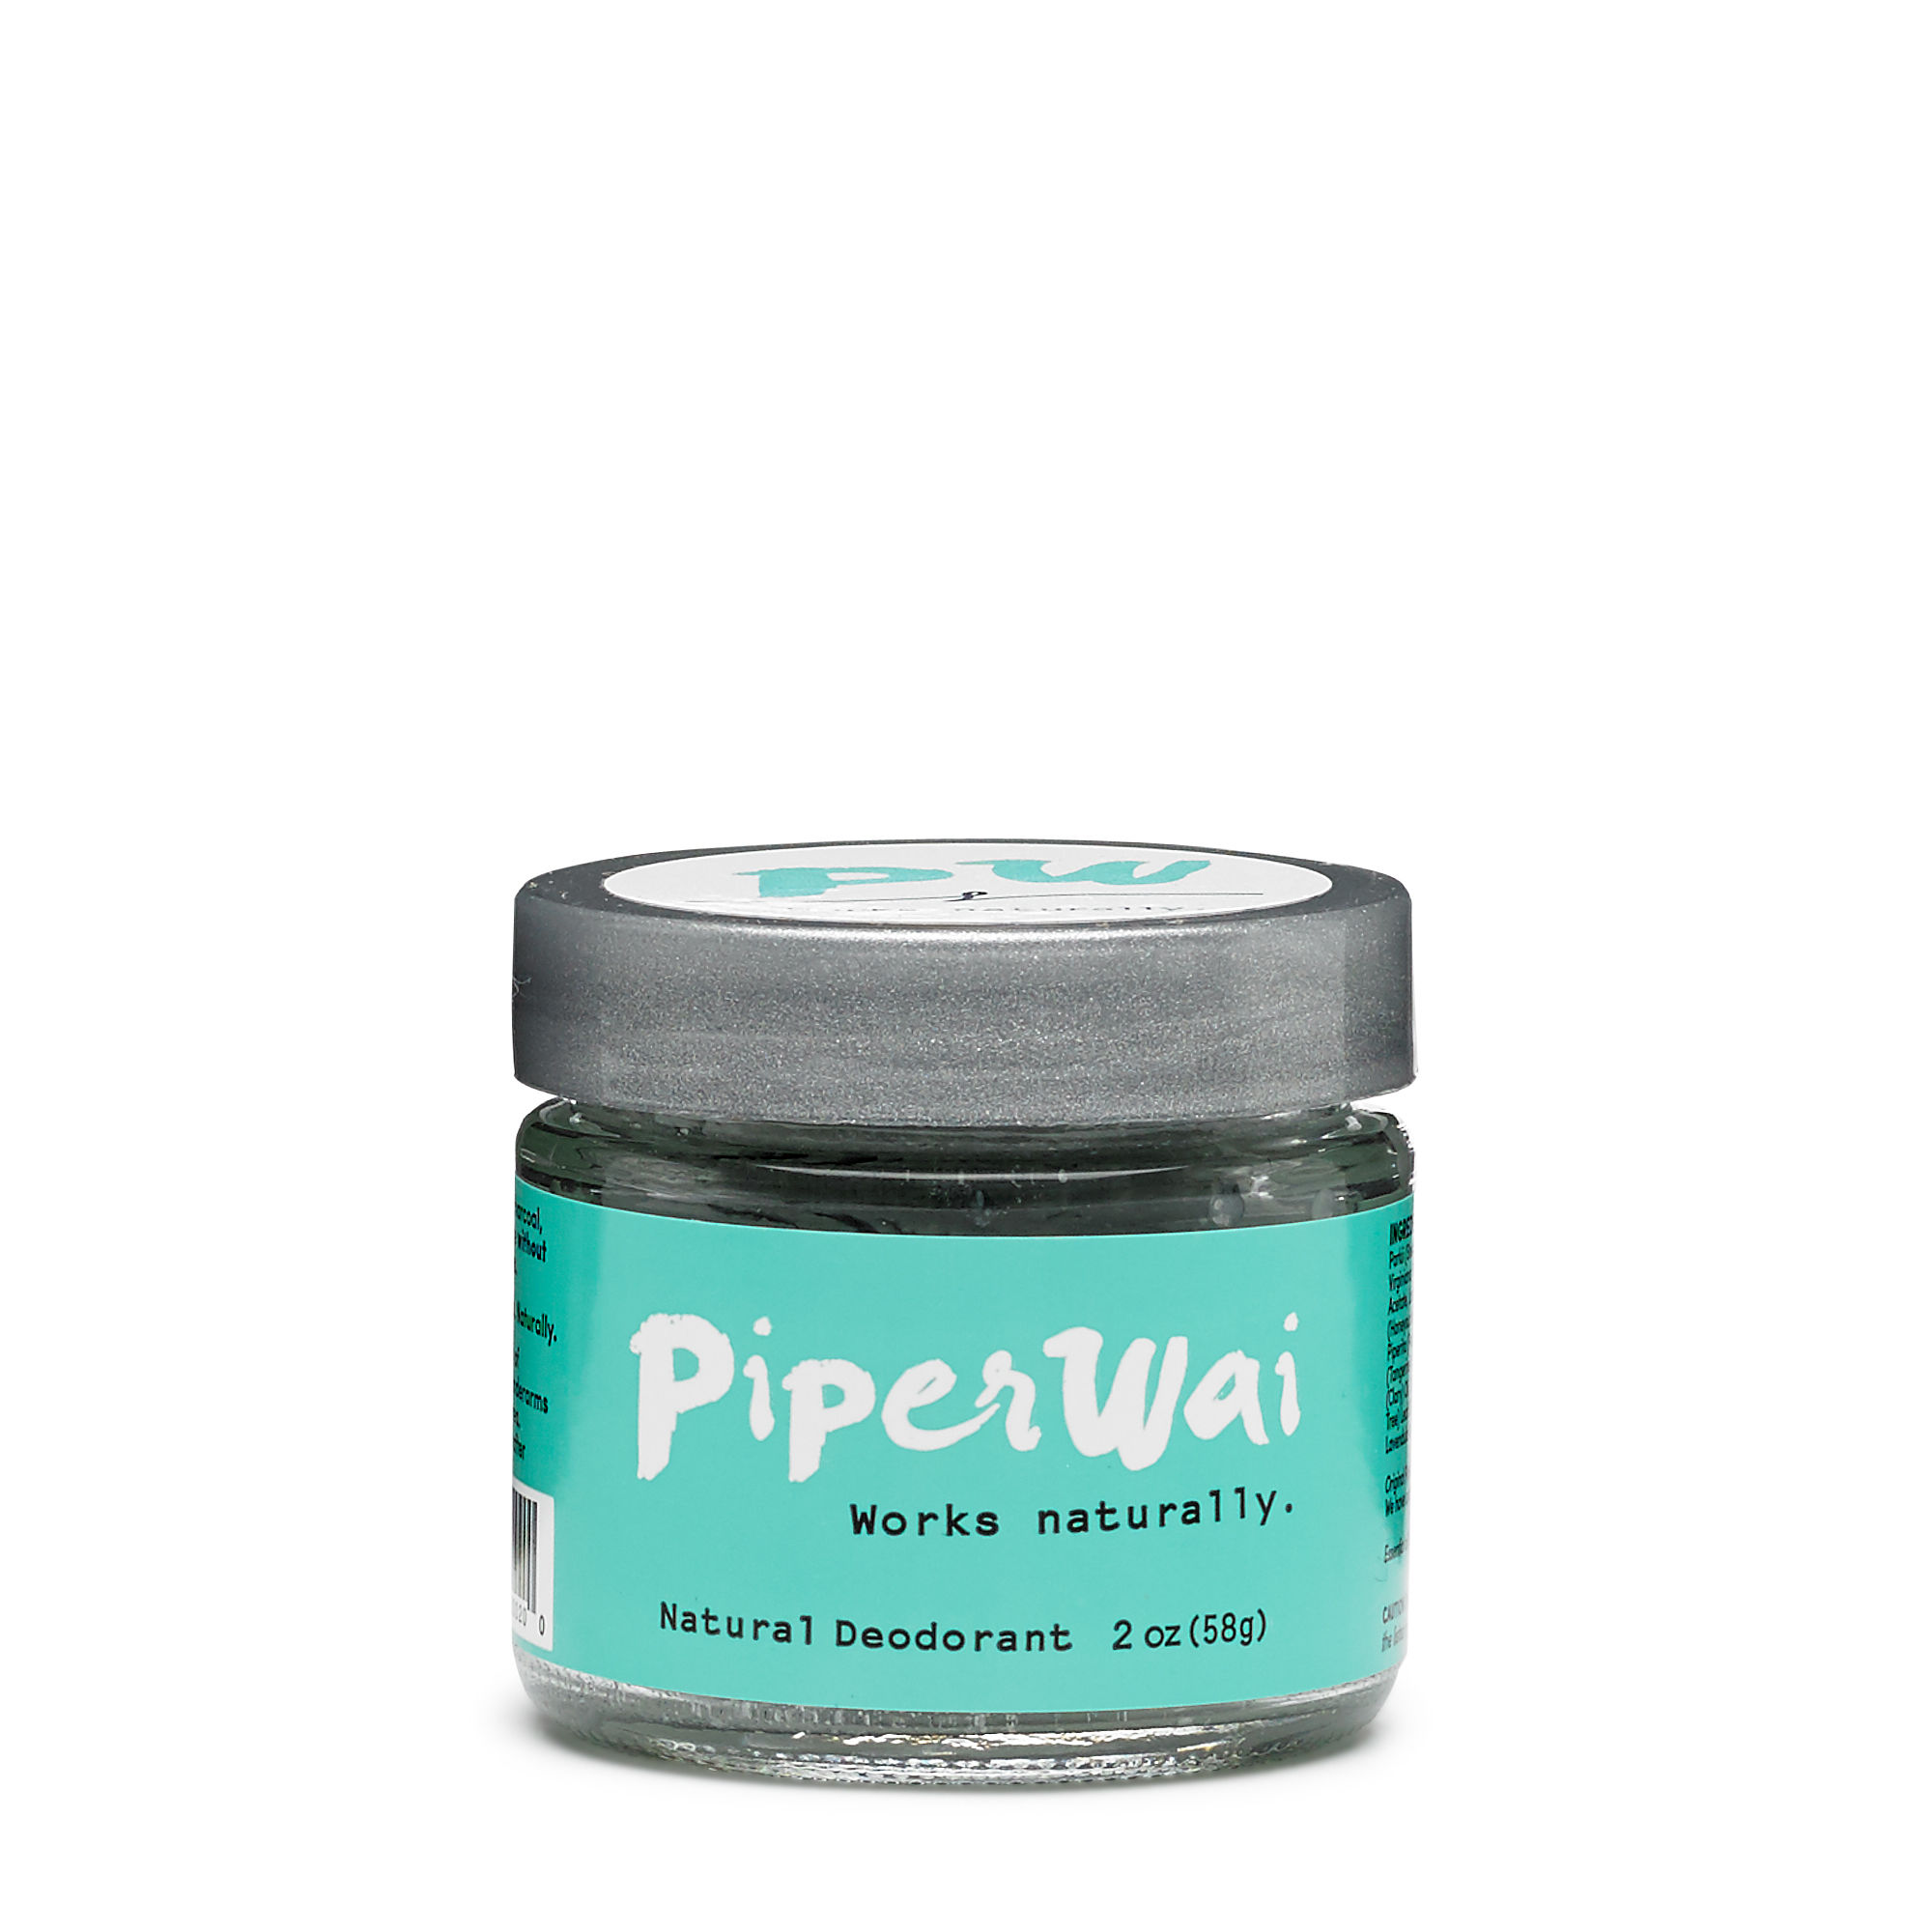 GNC PIPERWAI NATURAL DEODORANT 天然除臭劑 (2oz)